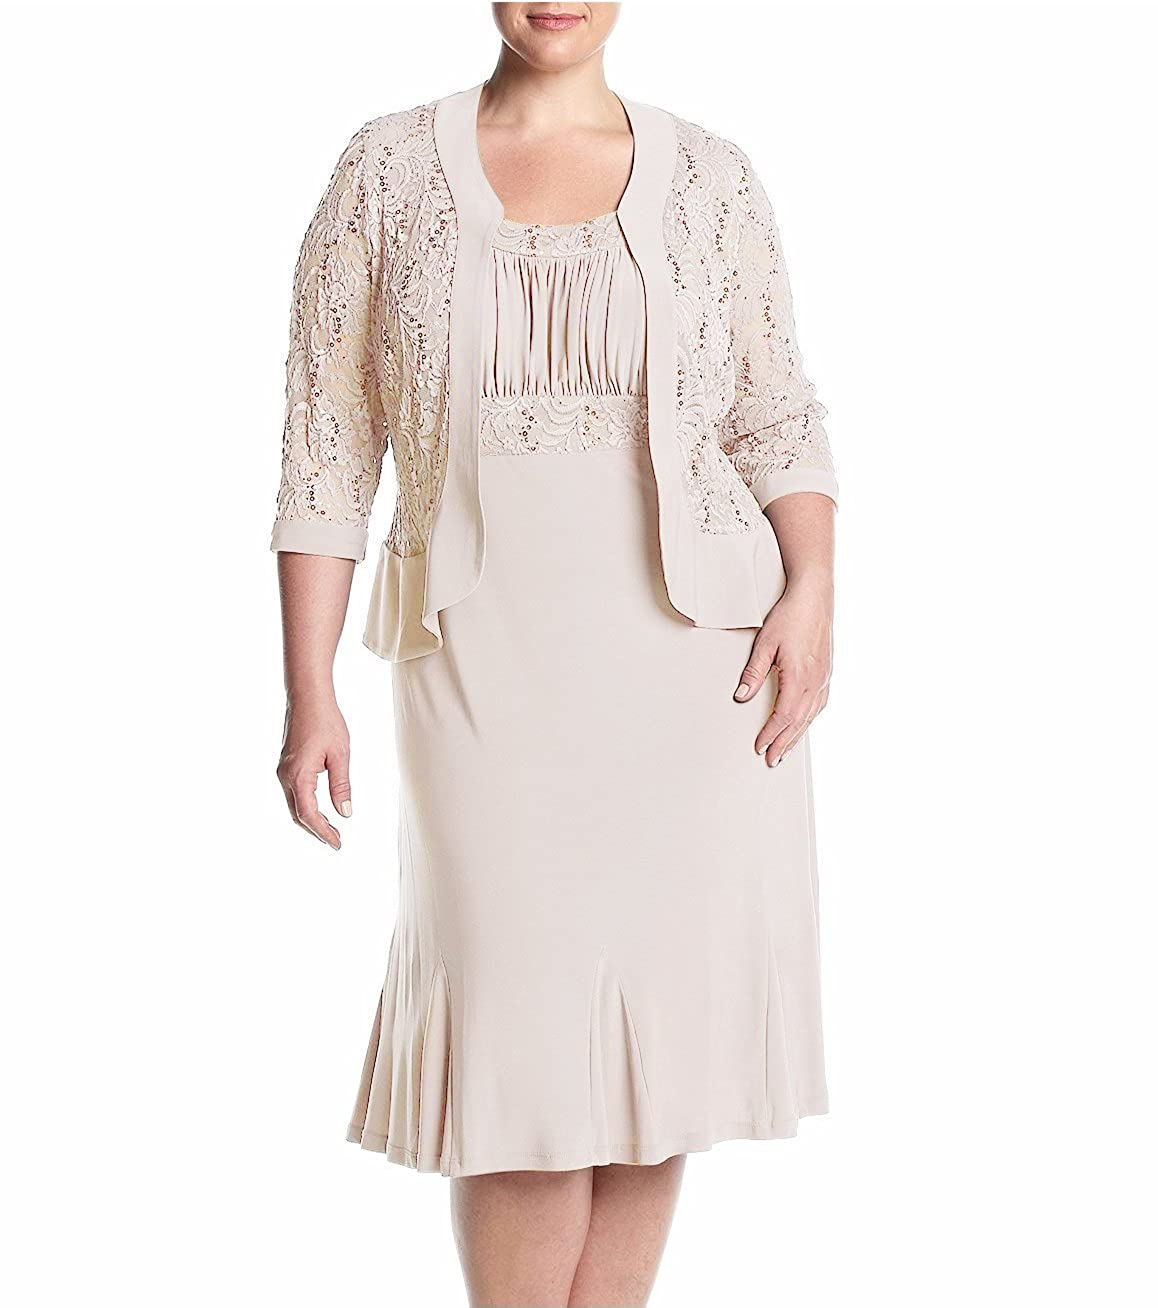 1930s Wedding History R&M Richards RM Richards Womens Plus Size Ruffled Trim Lace Jacket Mother Of The Bride Dress $99.99 AT vintagedancer.com